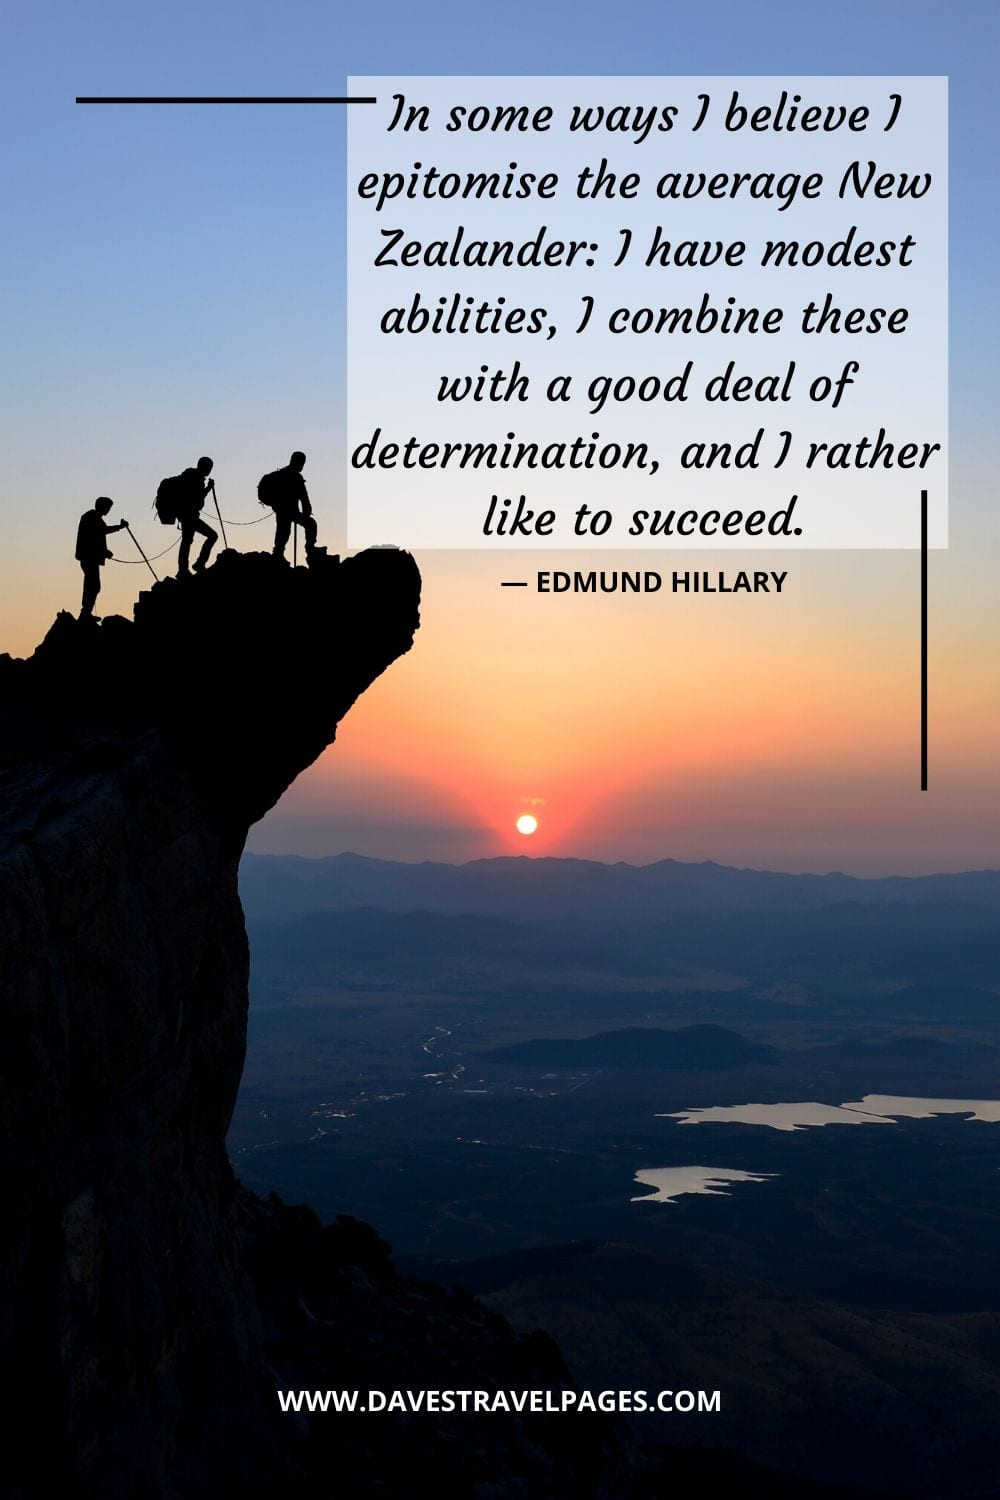 "Quotes about determination and Success: ""In some ways I believe I epitomise the average New Zealander: I have modest abilities, I combine these with a good deal of determination, and I rather like to succeed."" - Edmund Hillary"